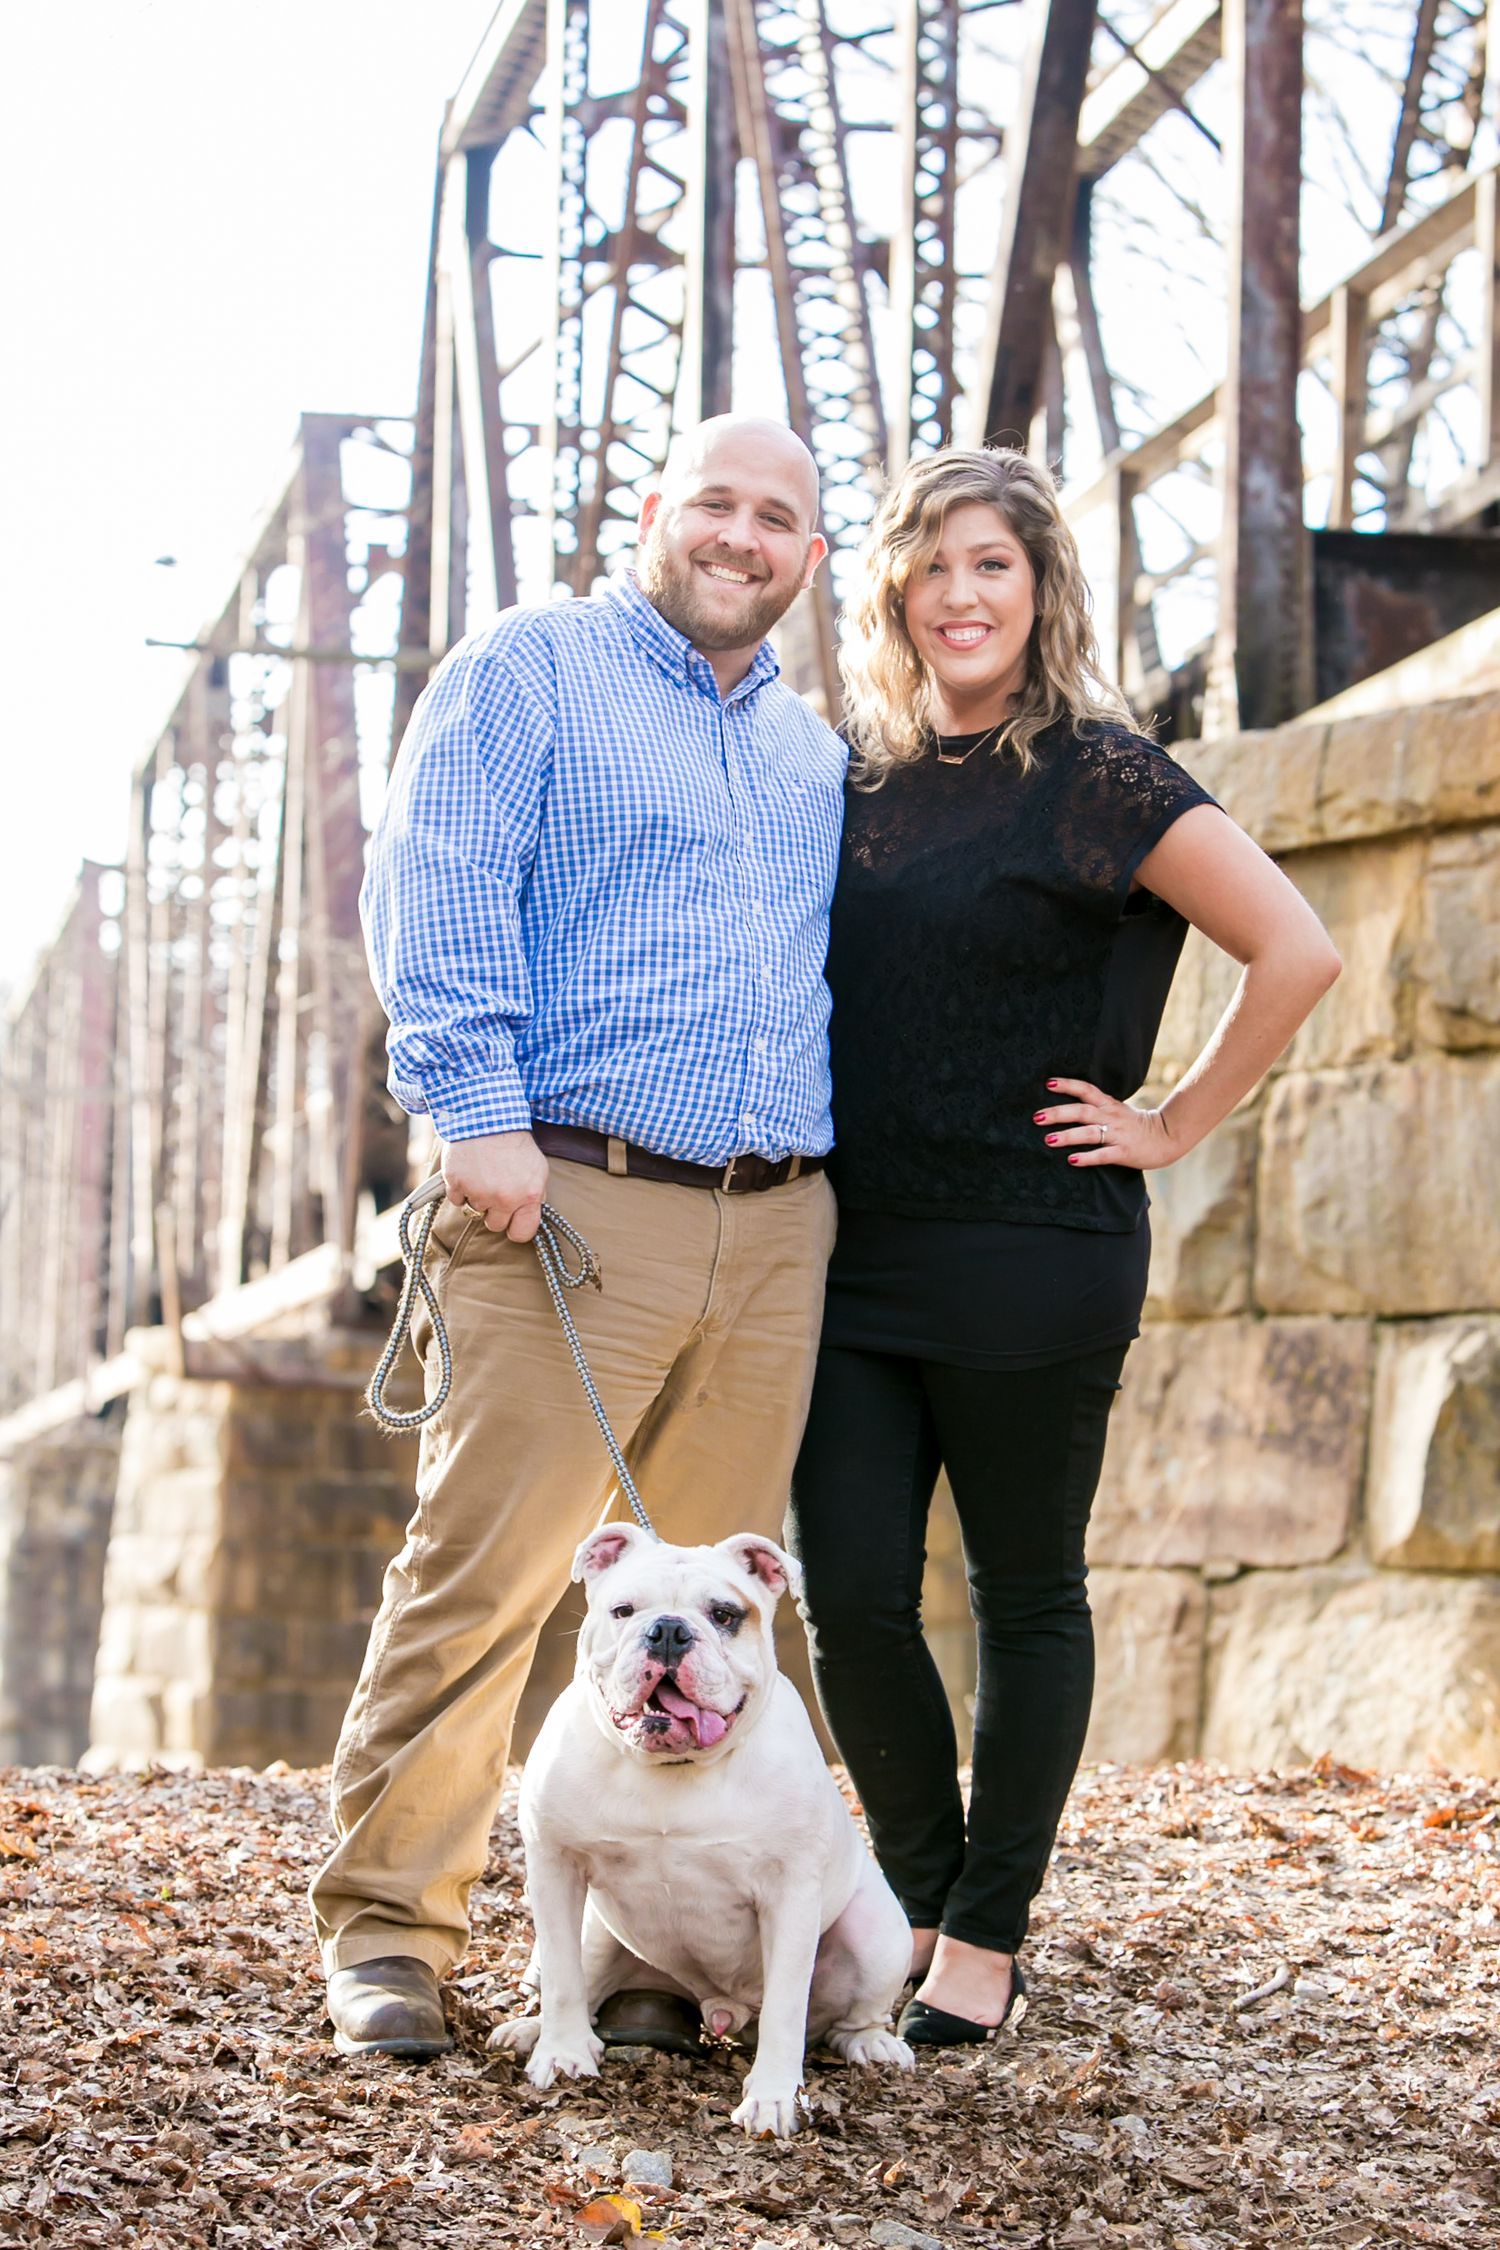 Palmetto Trail in Peak, SC,  engagement portrait by Columbia, SC, Wedding Photographer Jeff Blake